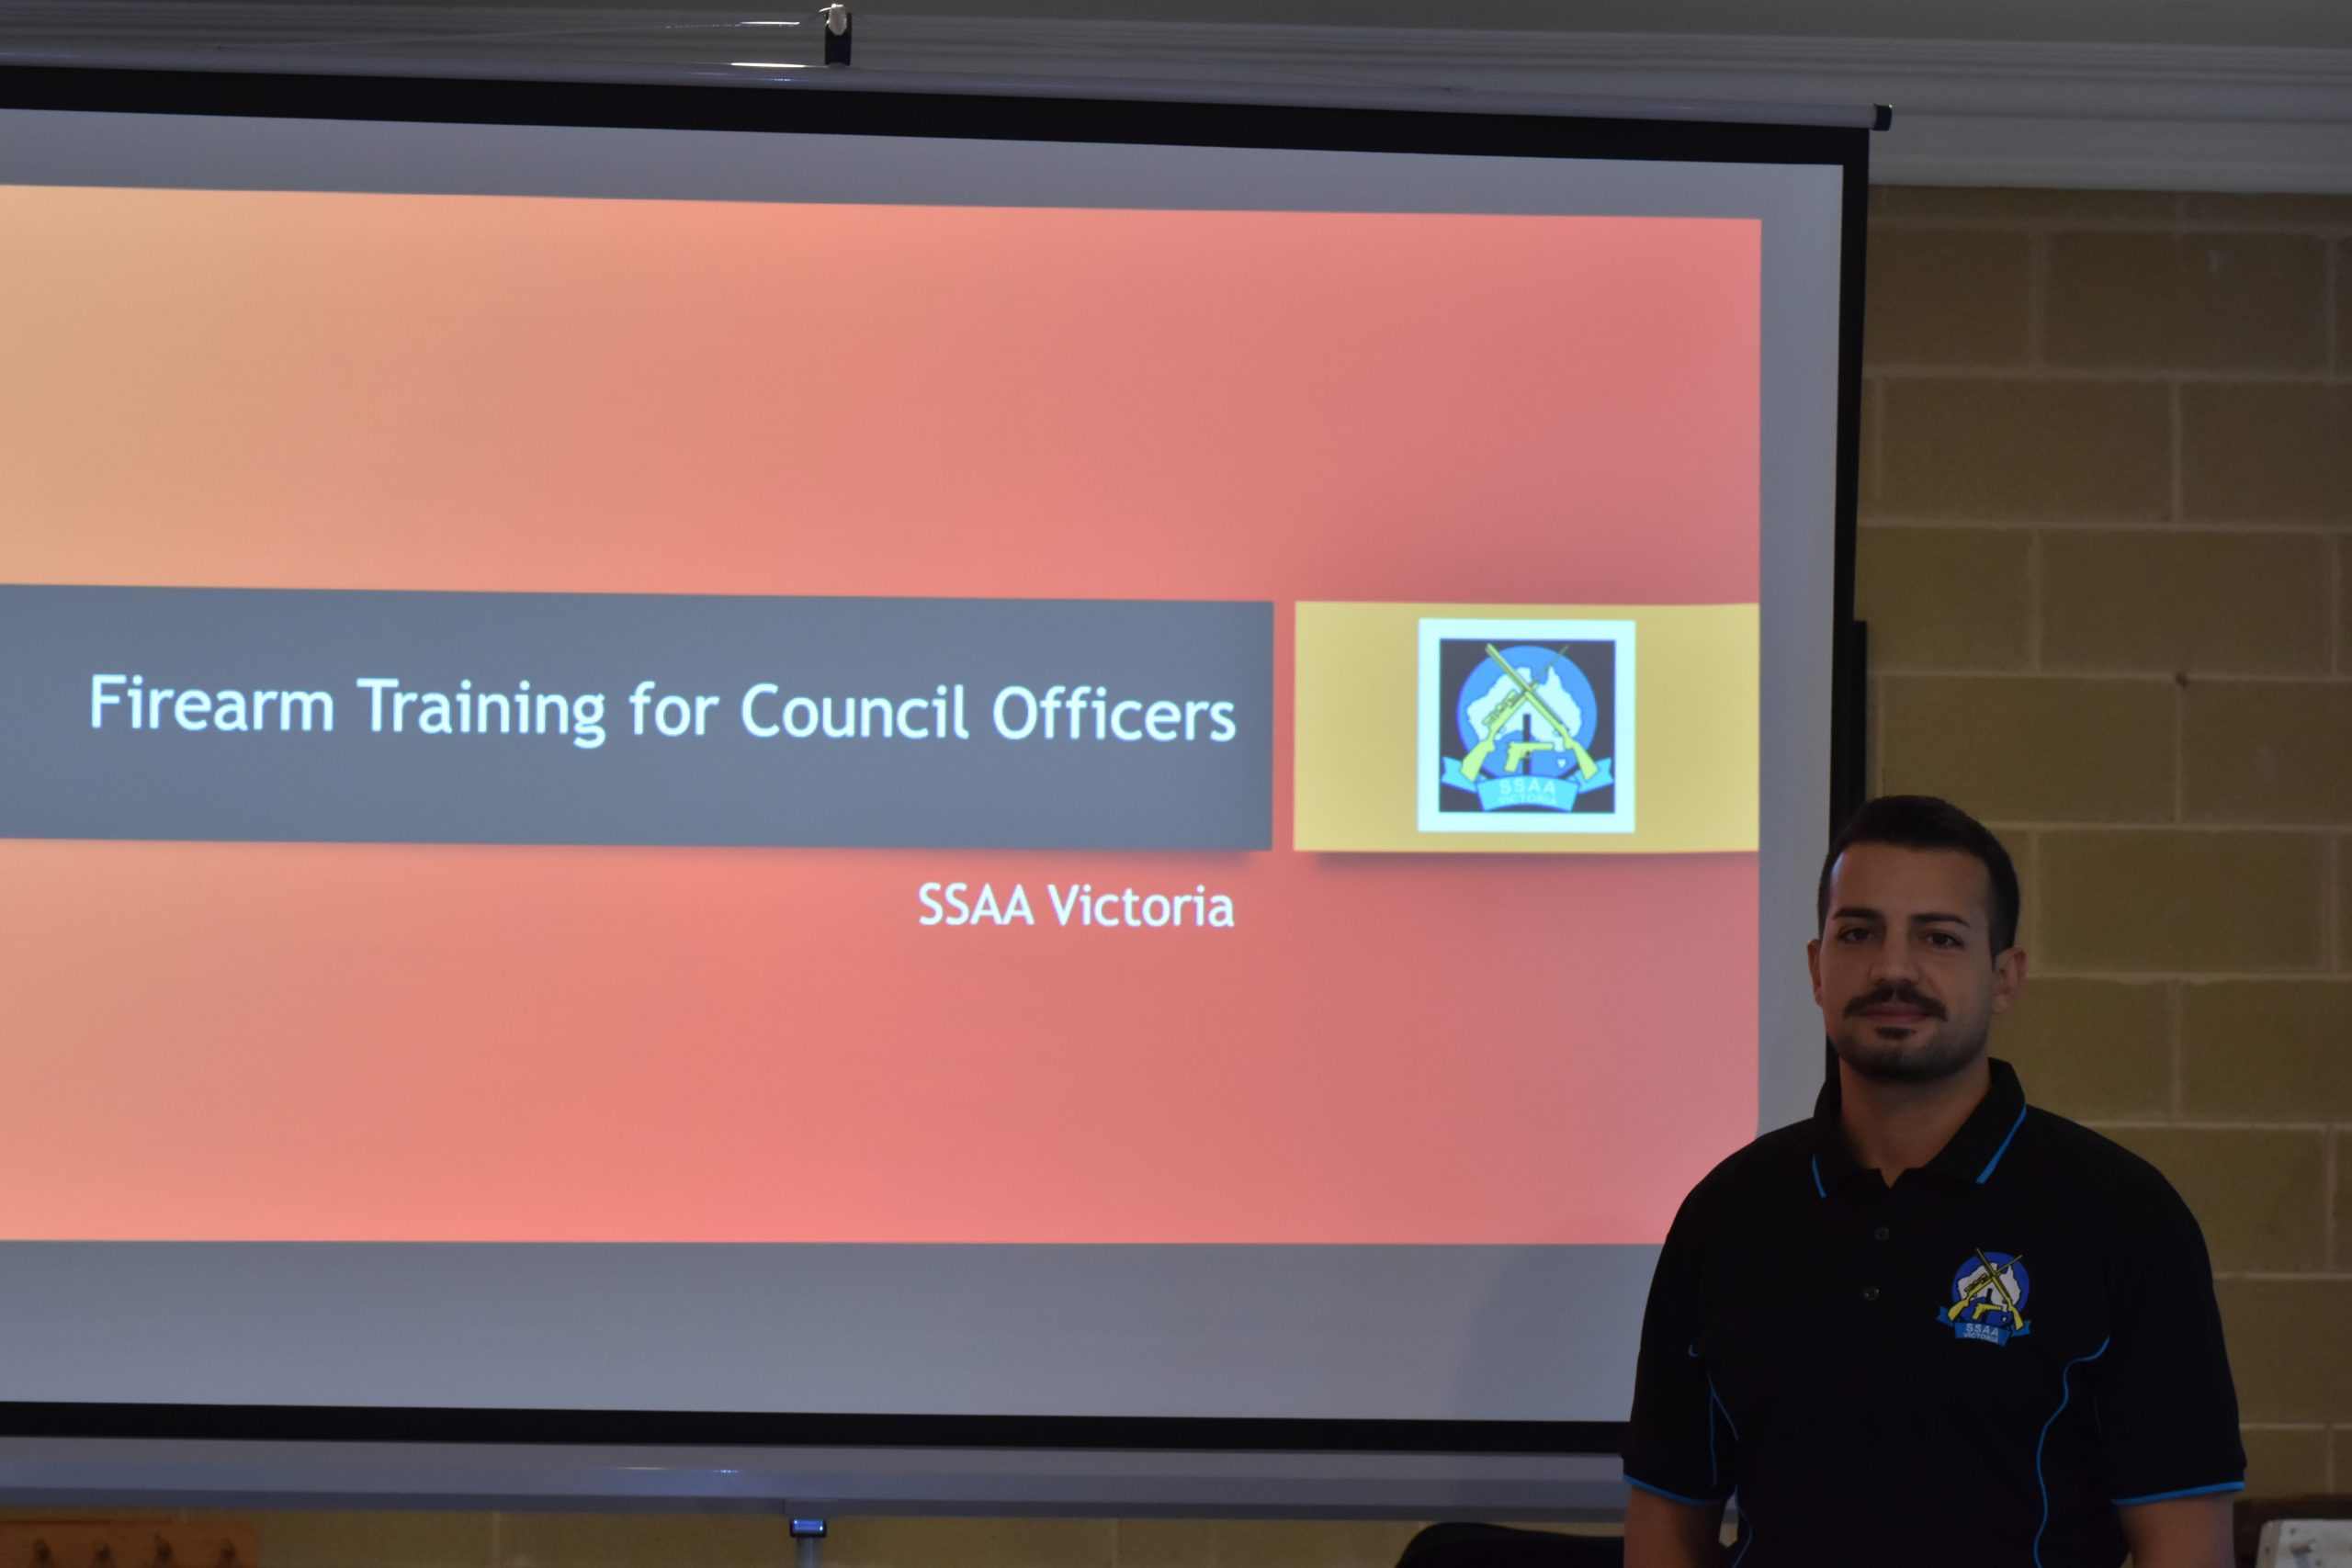 Course for Council Officers